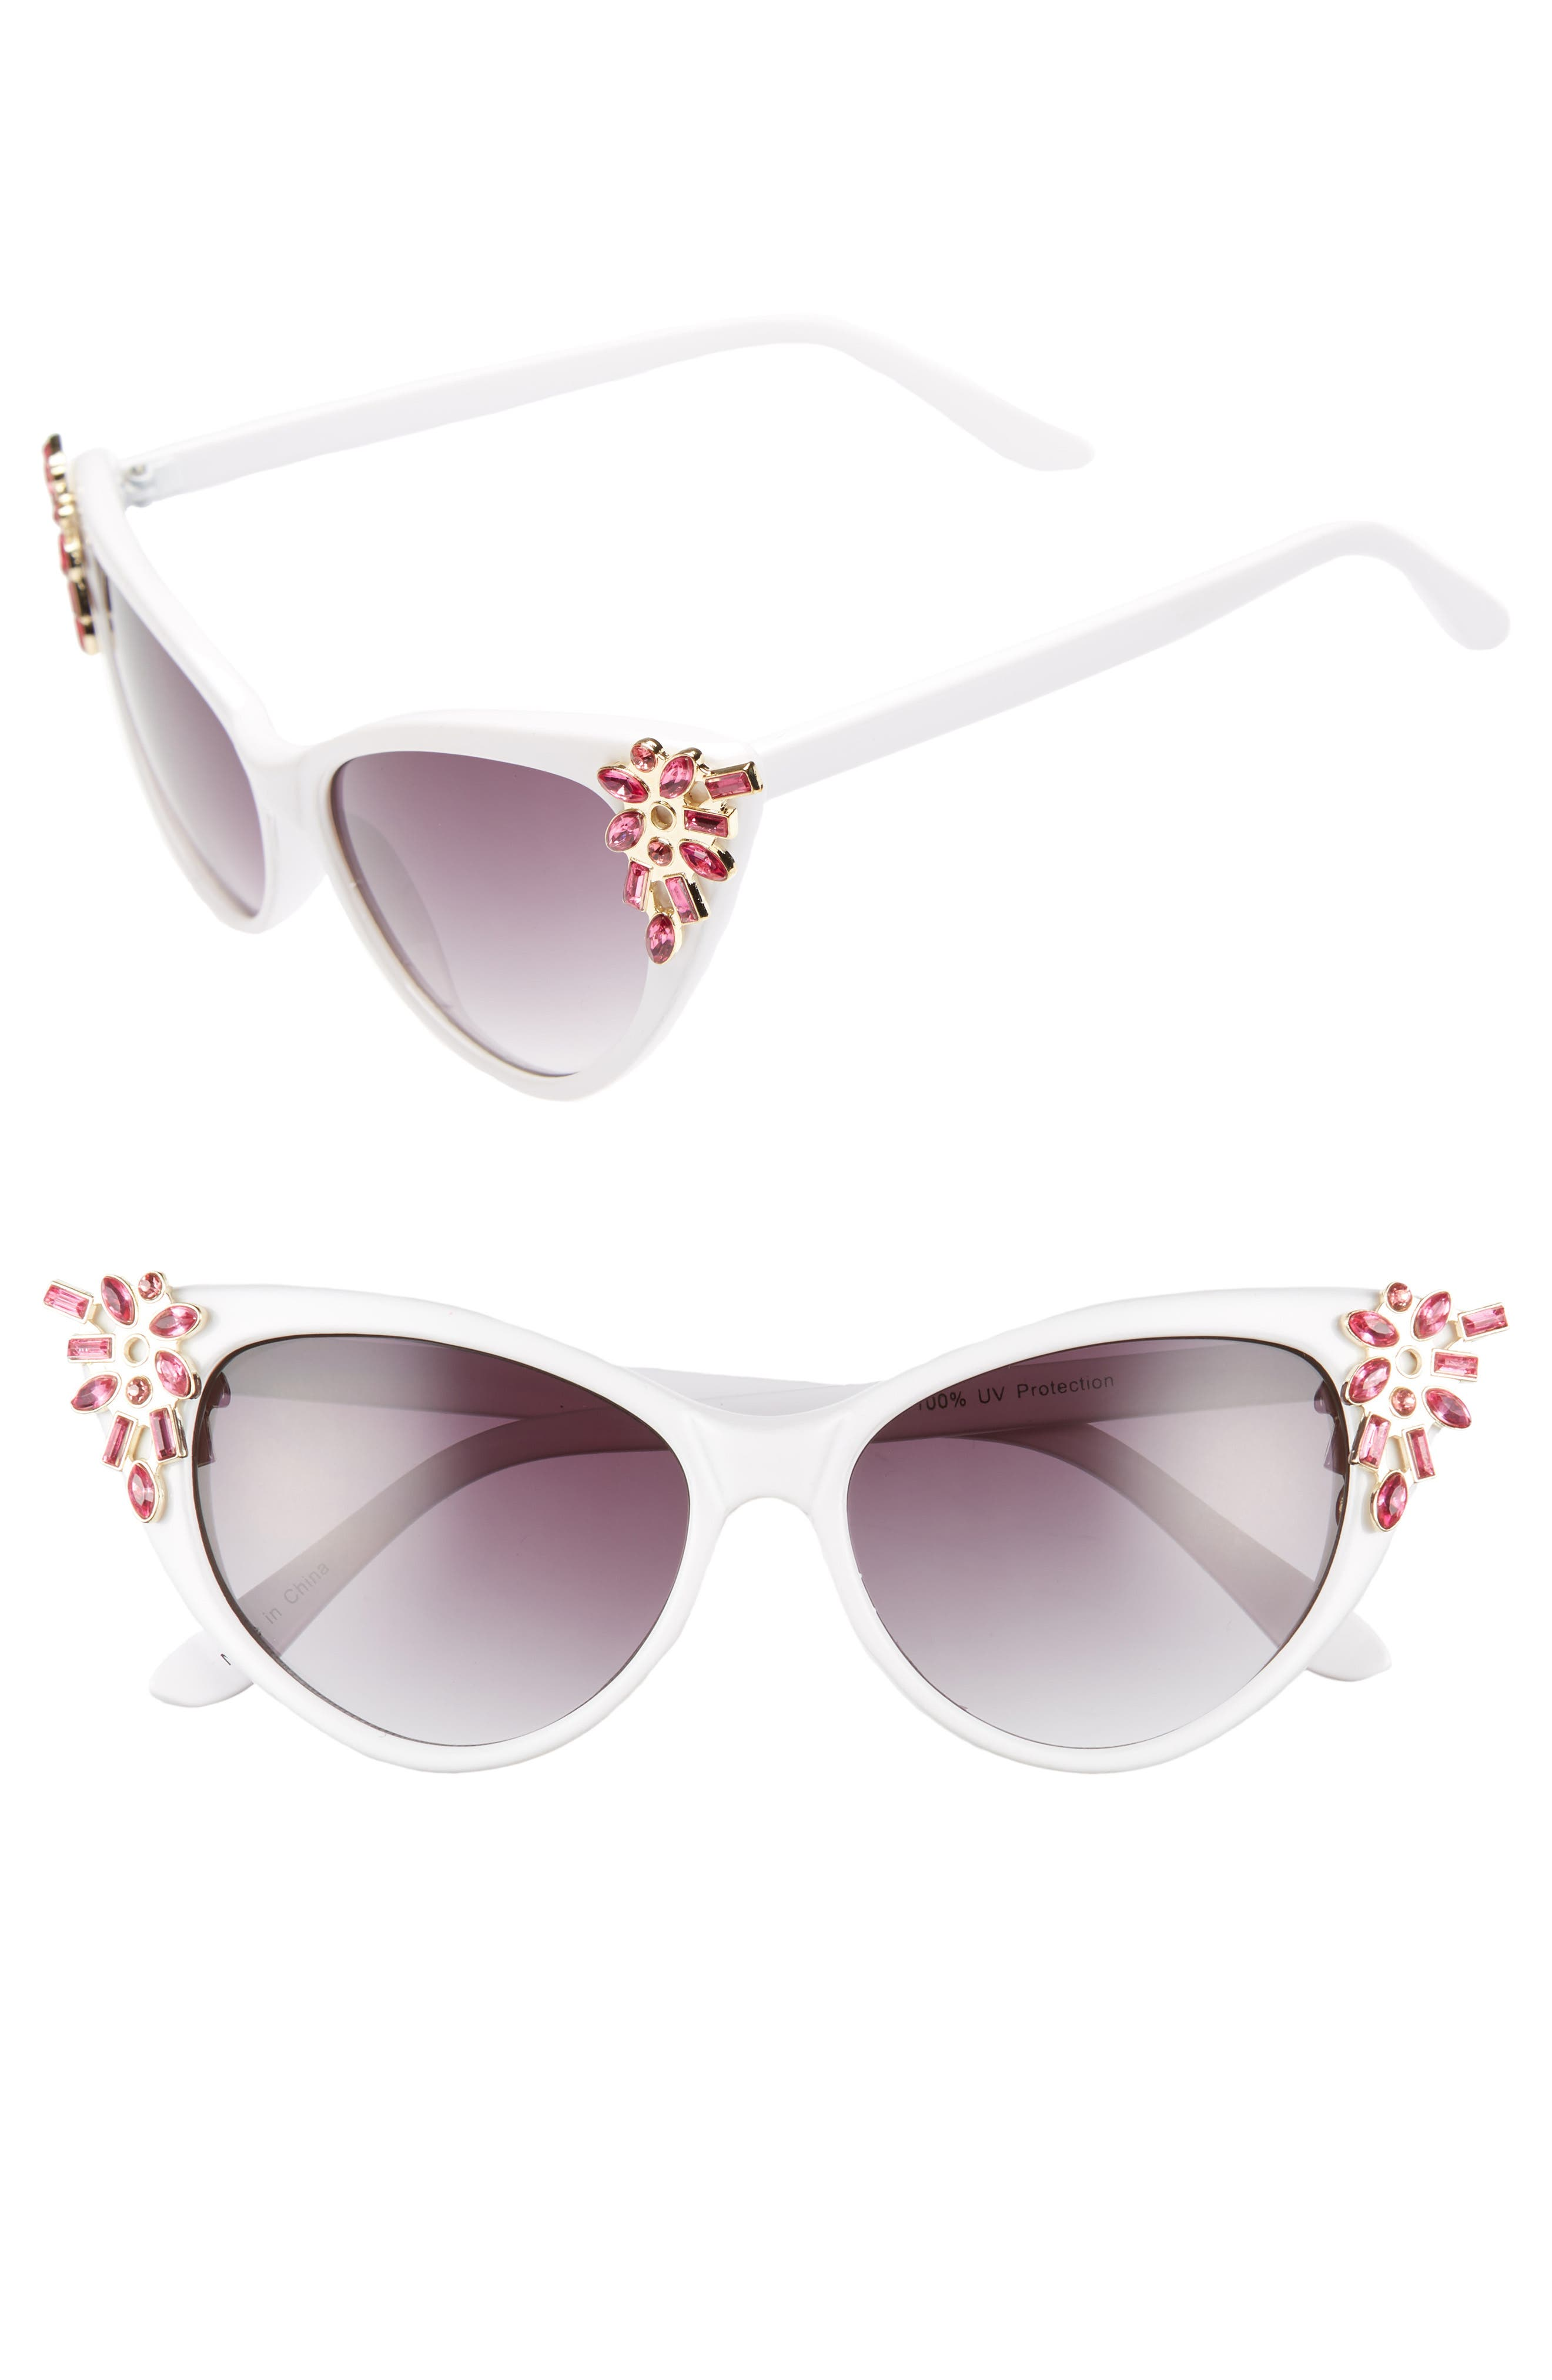 54mm Crystal Exaggerated Cat Eye Sunglasses,                         Main,                         color, WHITE/ PINK